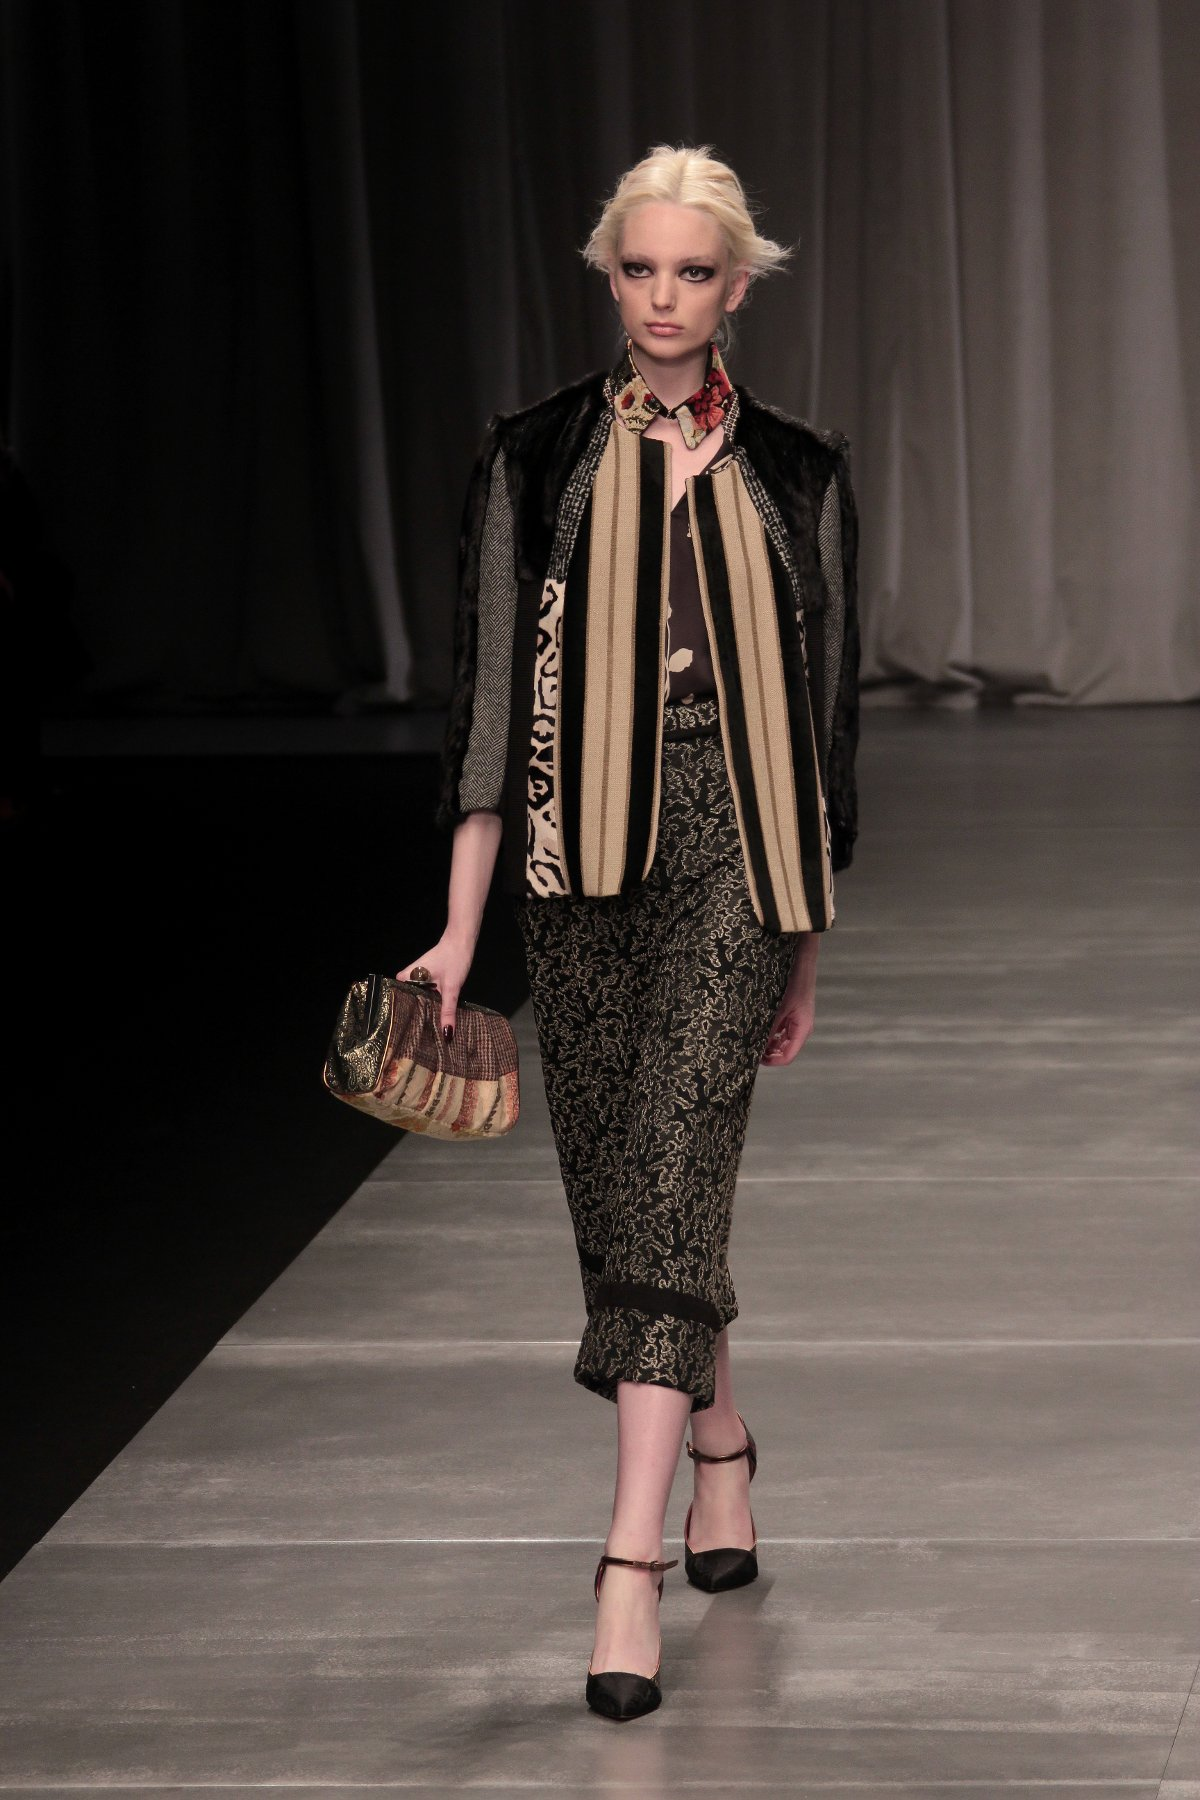 Antonio Marras Fall Winter 2012-13 Women's Collection